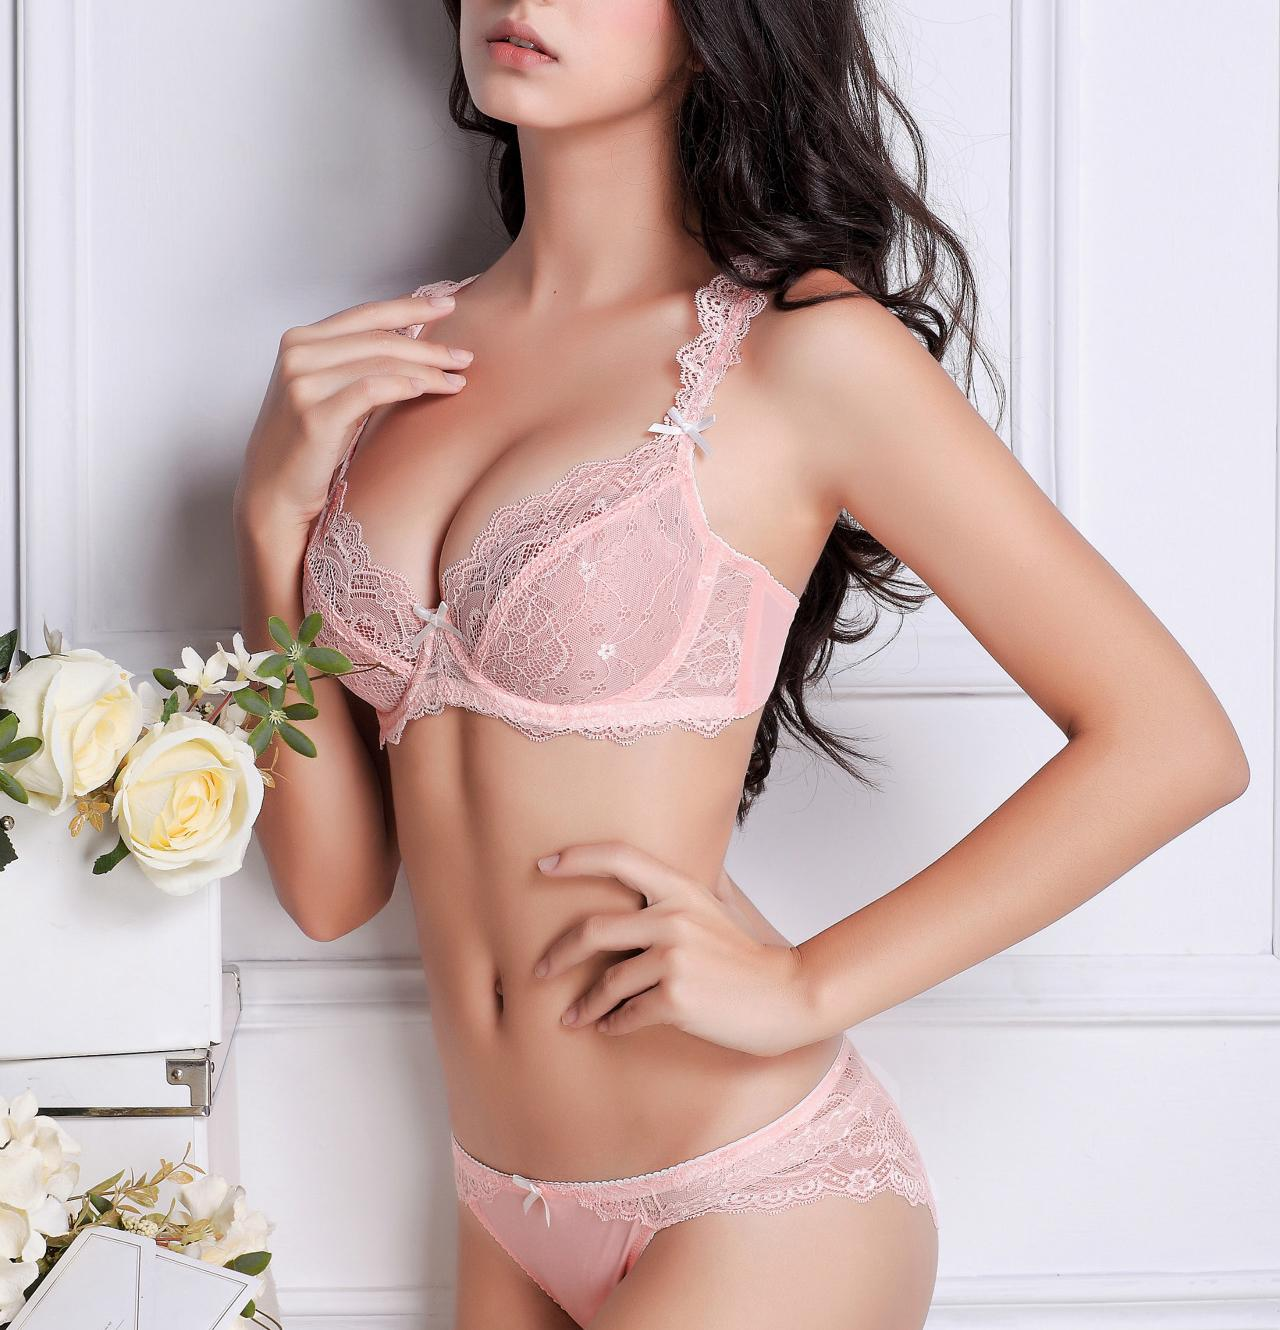 2019 Pink Bra Set 2017 Underwear Women Sheer Lace Sweetheart Ultra Thin  Transparent Sexy Bra Panty Push Up Girls Hot Lingerie Sets From Maluokui 37cc837fc